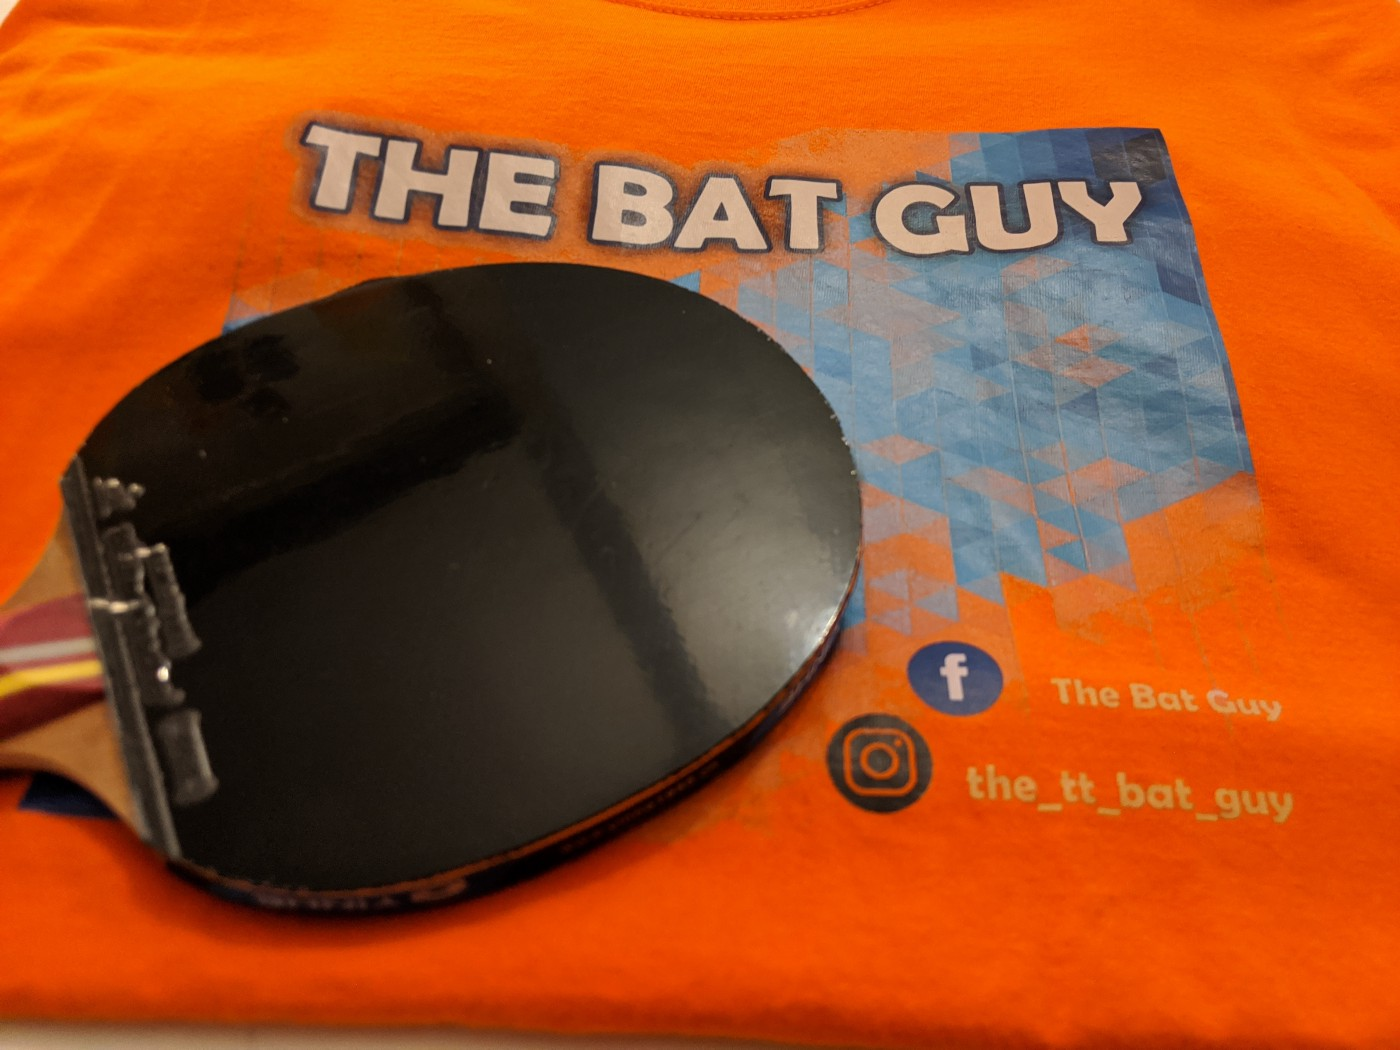 A 'The Bat Guy' branded orange shirt with a table tennis bat laid on top of it